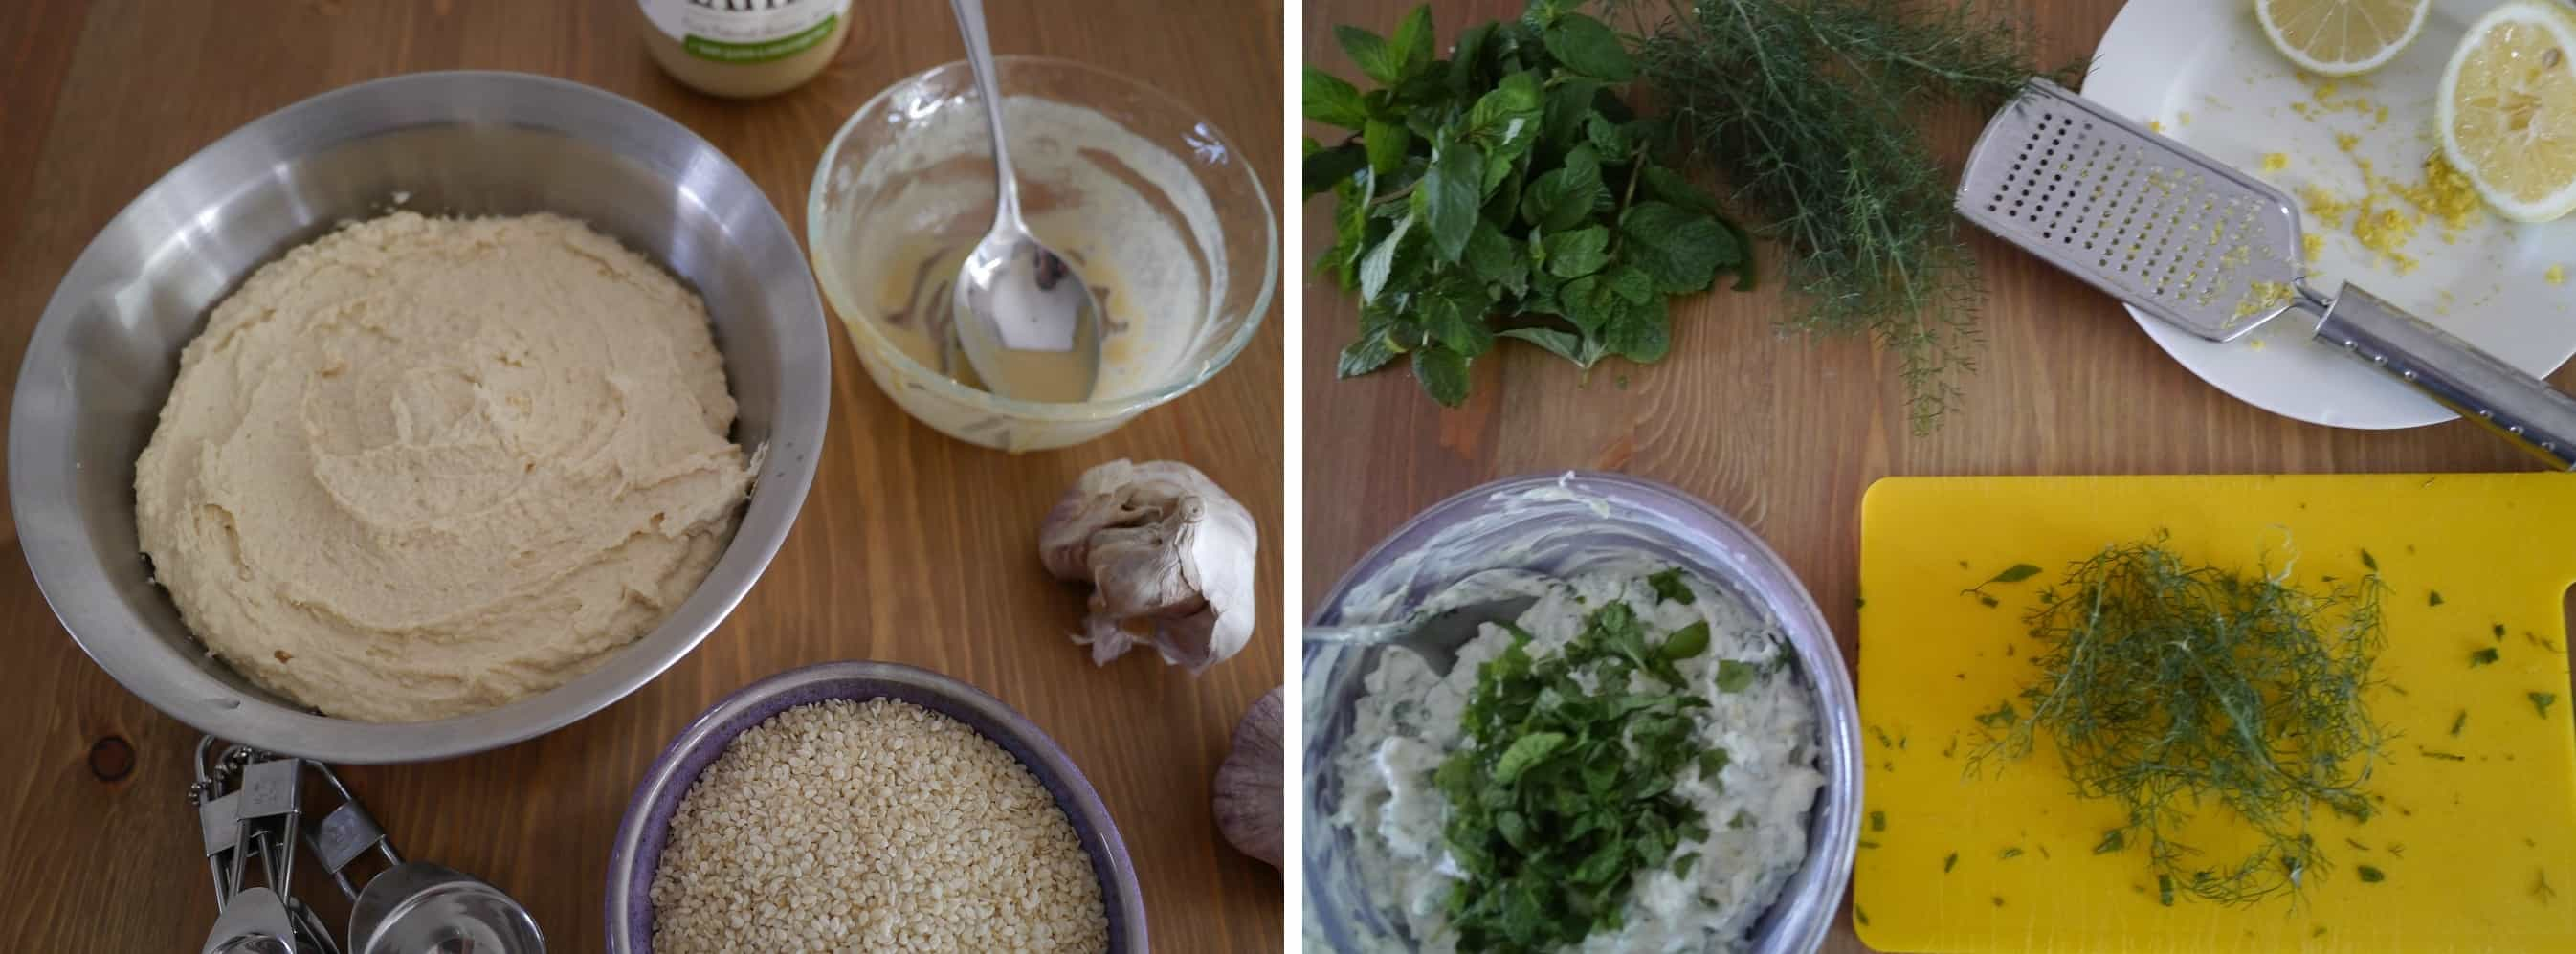 Homemade Hummus and Tzatziki (2 Simple DIY Recipes)